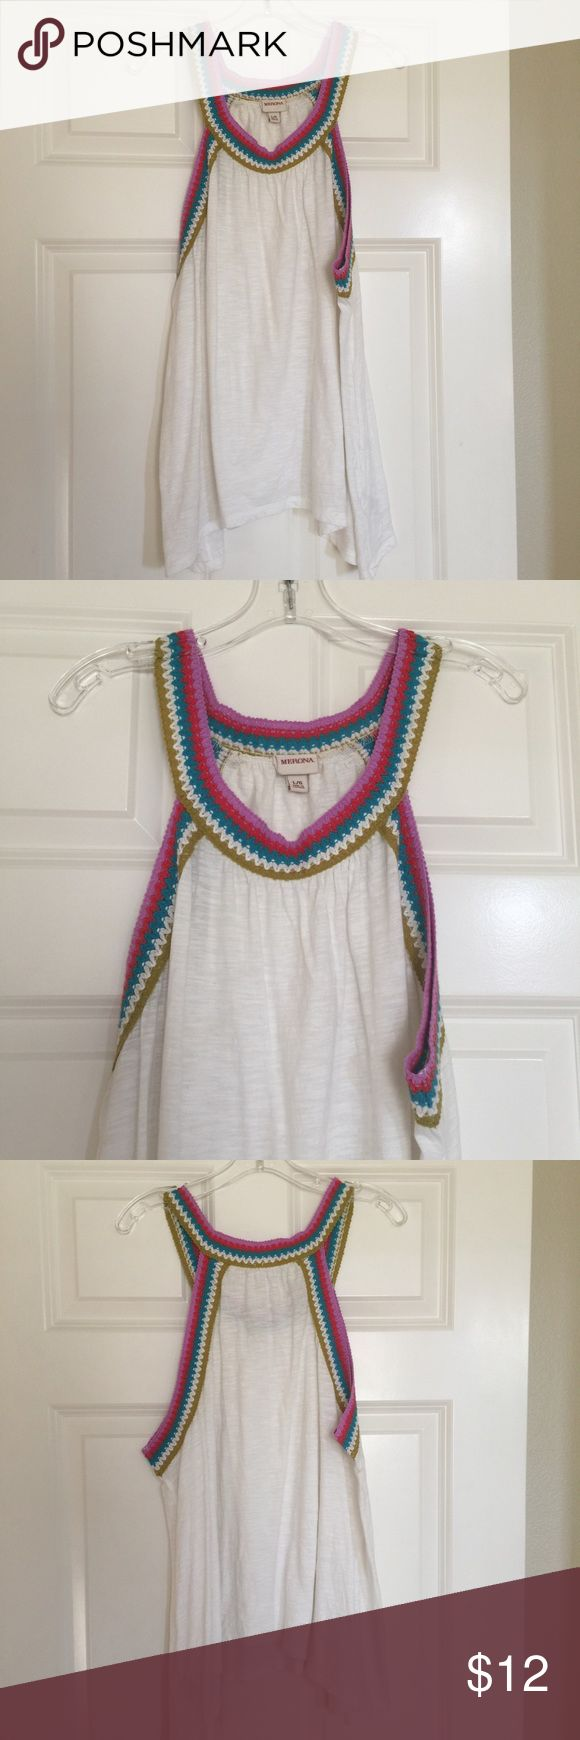 Razor back flowy tank top! This is a razor back flowy tank. The edges of the neck line are knit fabric in fun colors. It is longer on the sides make it a flattering fit Merona Tops Tank Tops